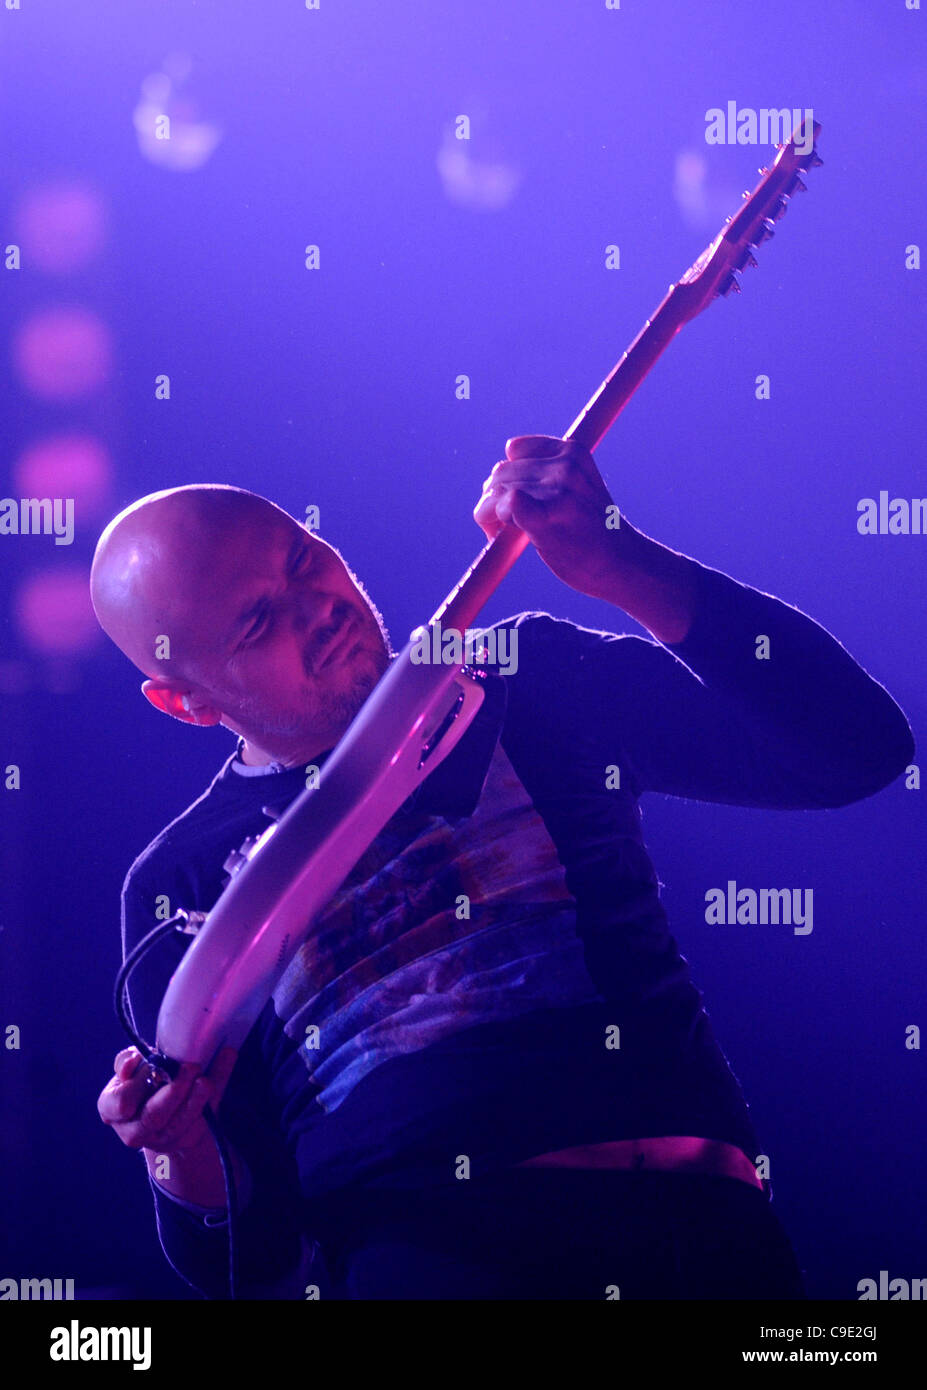 Billy Corgan, vocalist and lead guitarist of the alternative rock band The Smashing Pumpkins, during a concert held - Stock Image